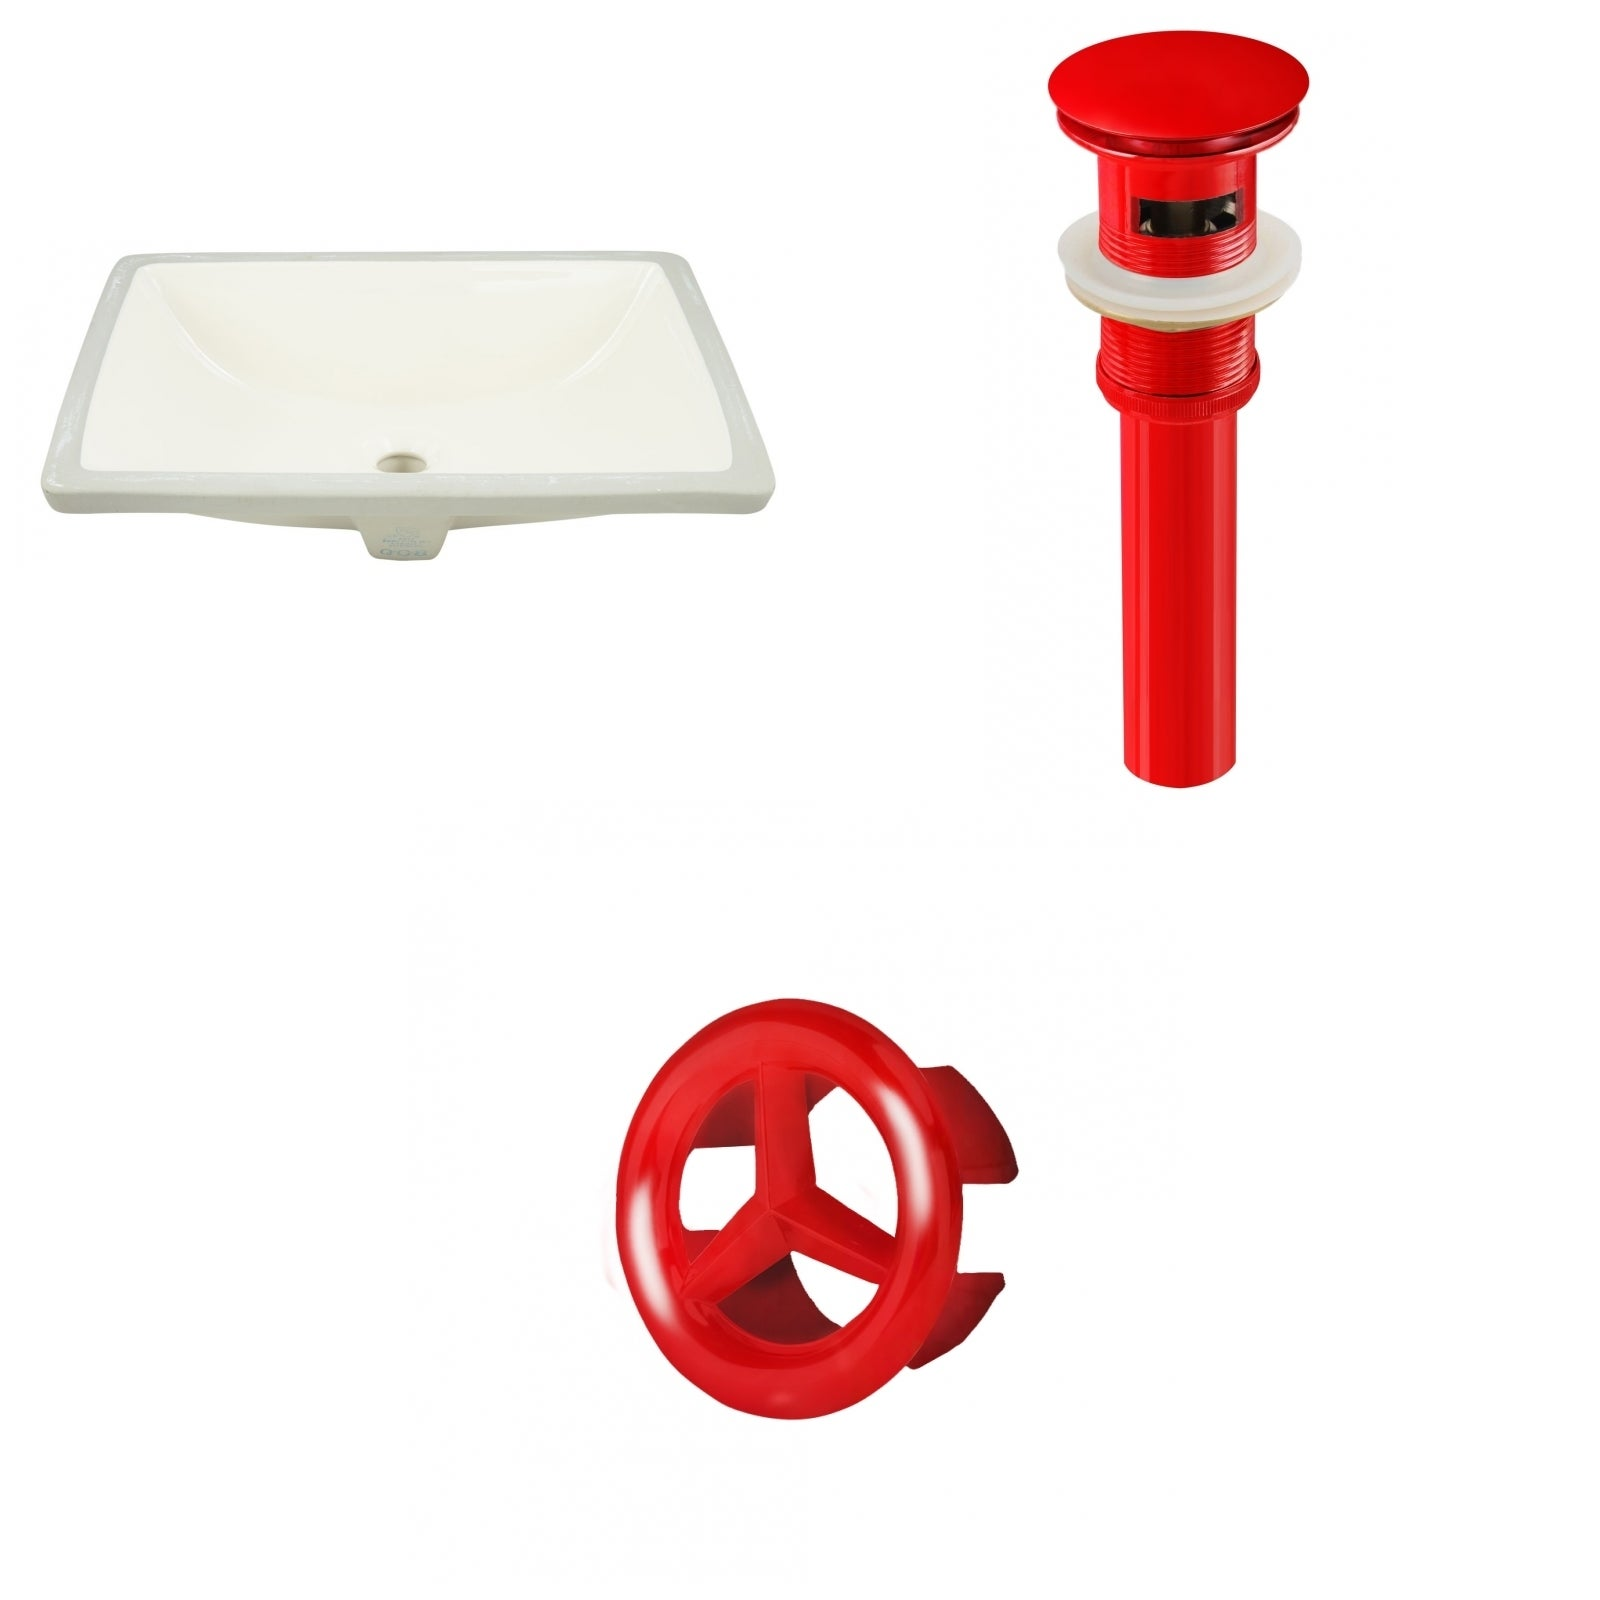 20.75-in. W Rectangle Undermount Sink Set In Biscuit - Red Hardware - Overflow Drain Incl. (Biscuit)